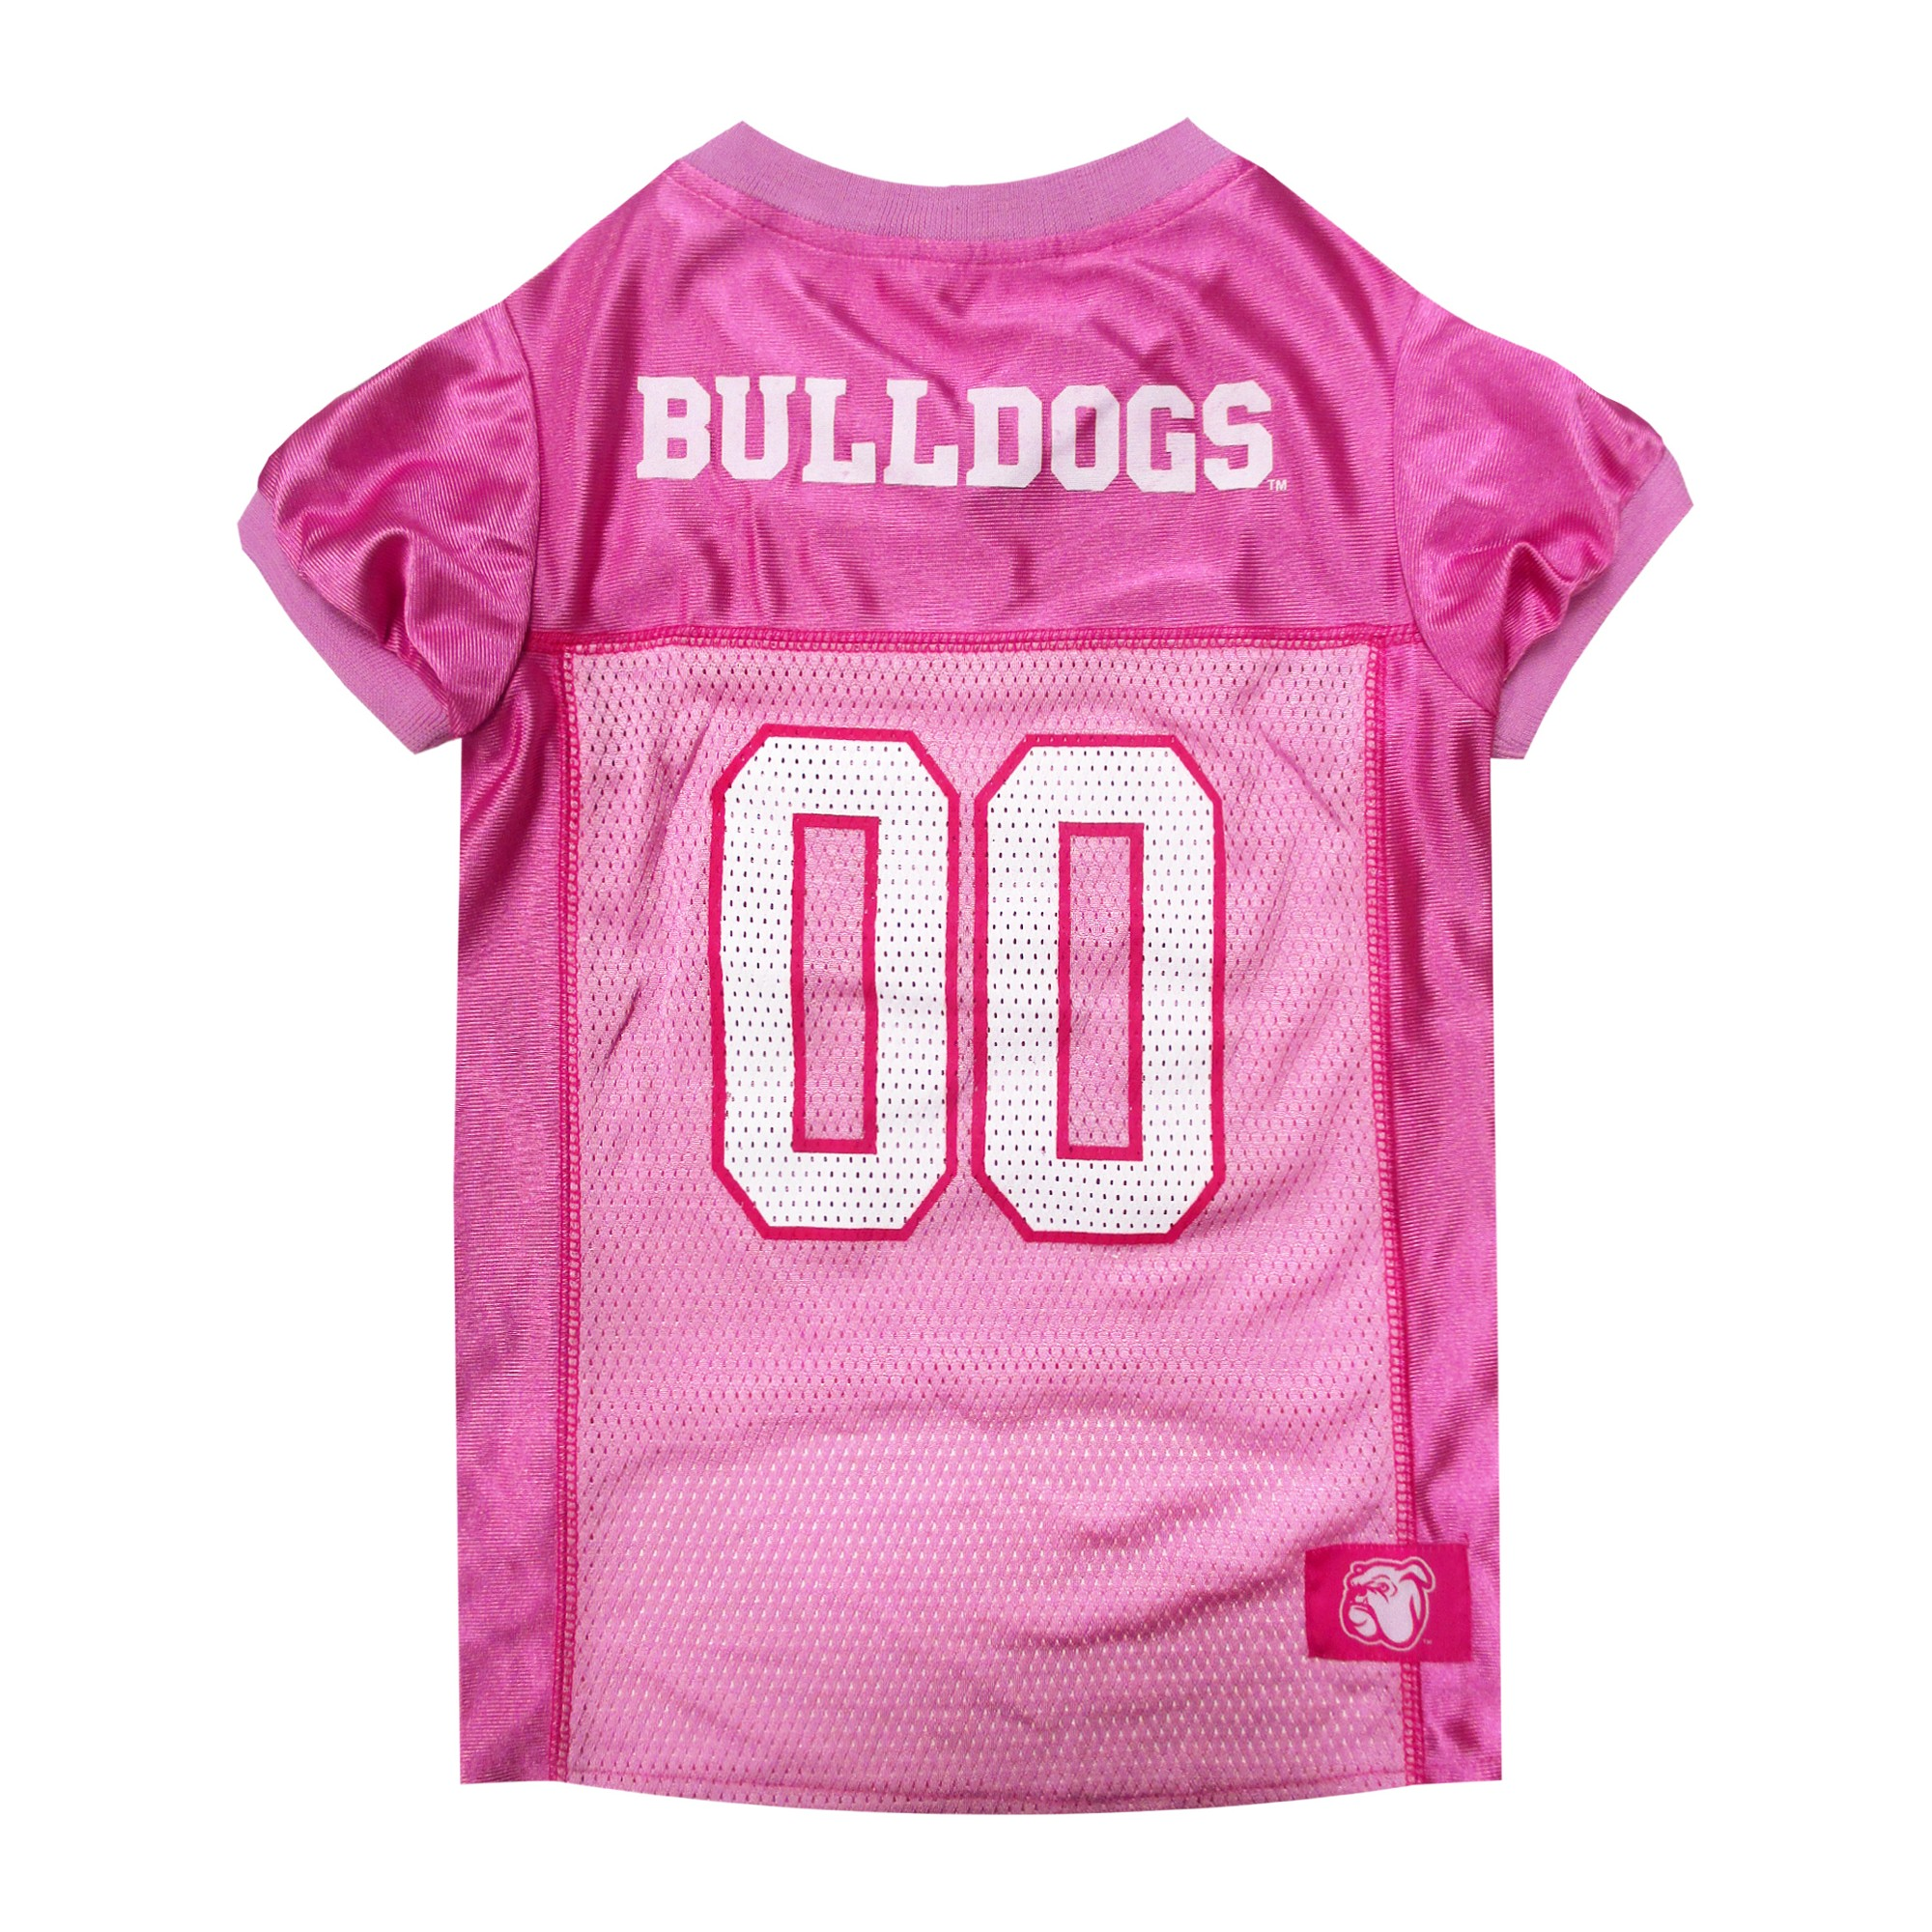 Pets First Mississippi State Bulldogs Pink Jersey - M 82ee2d6f0